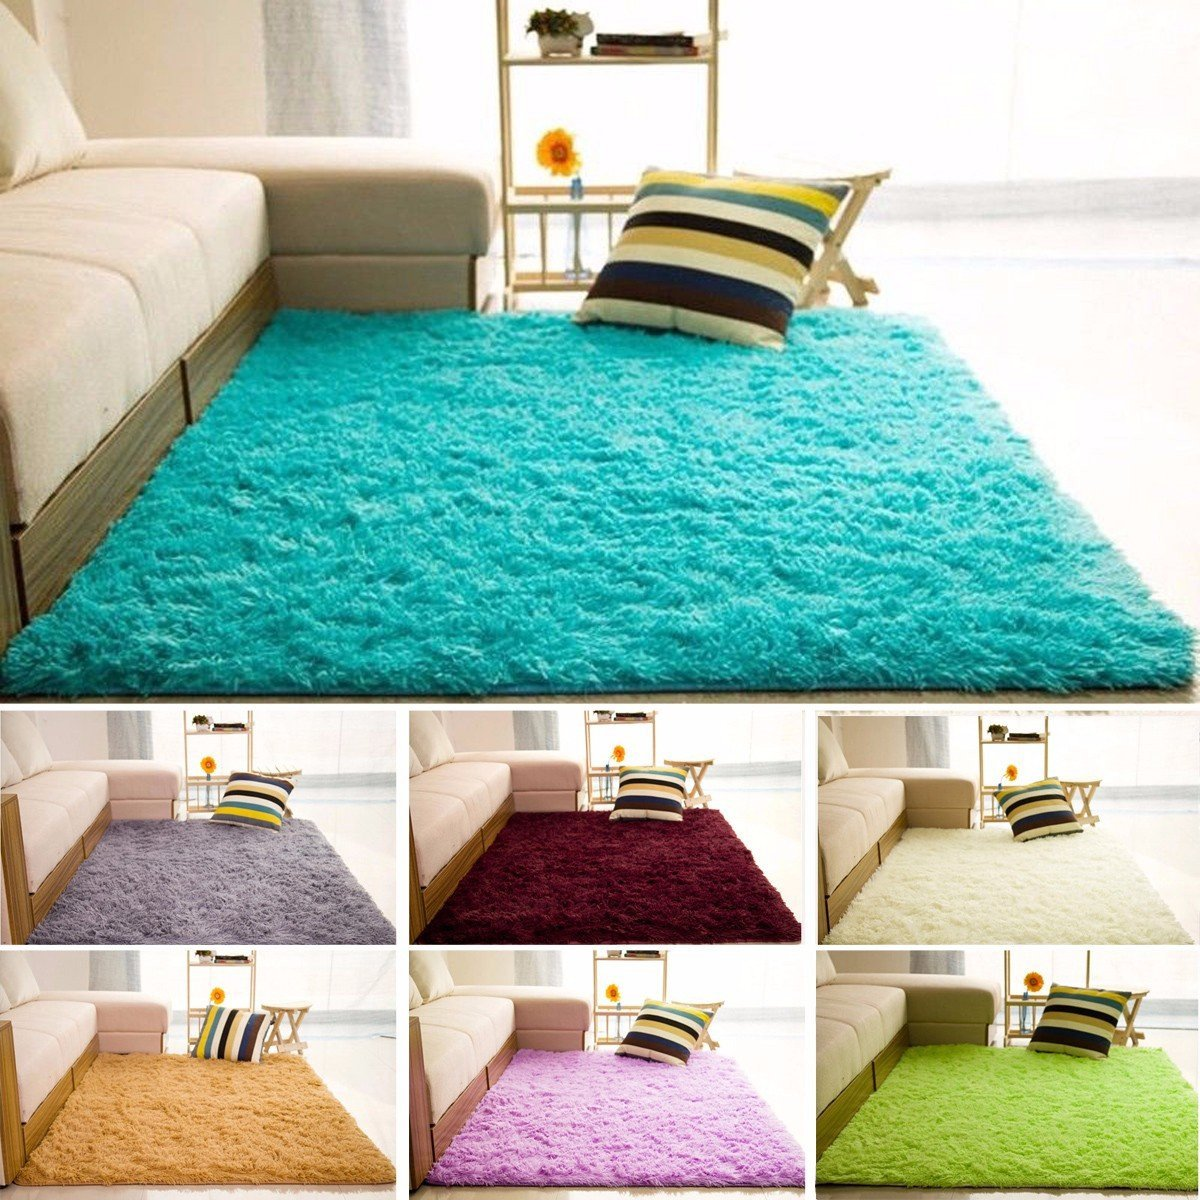 Furry Rugs for Bedroom Inspirational 80x200cm Fluffy Living Room Anti Slip Carpet Floor Mats Yoga Bedroom Rag Rugs Shag Rugs